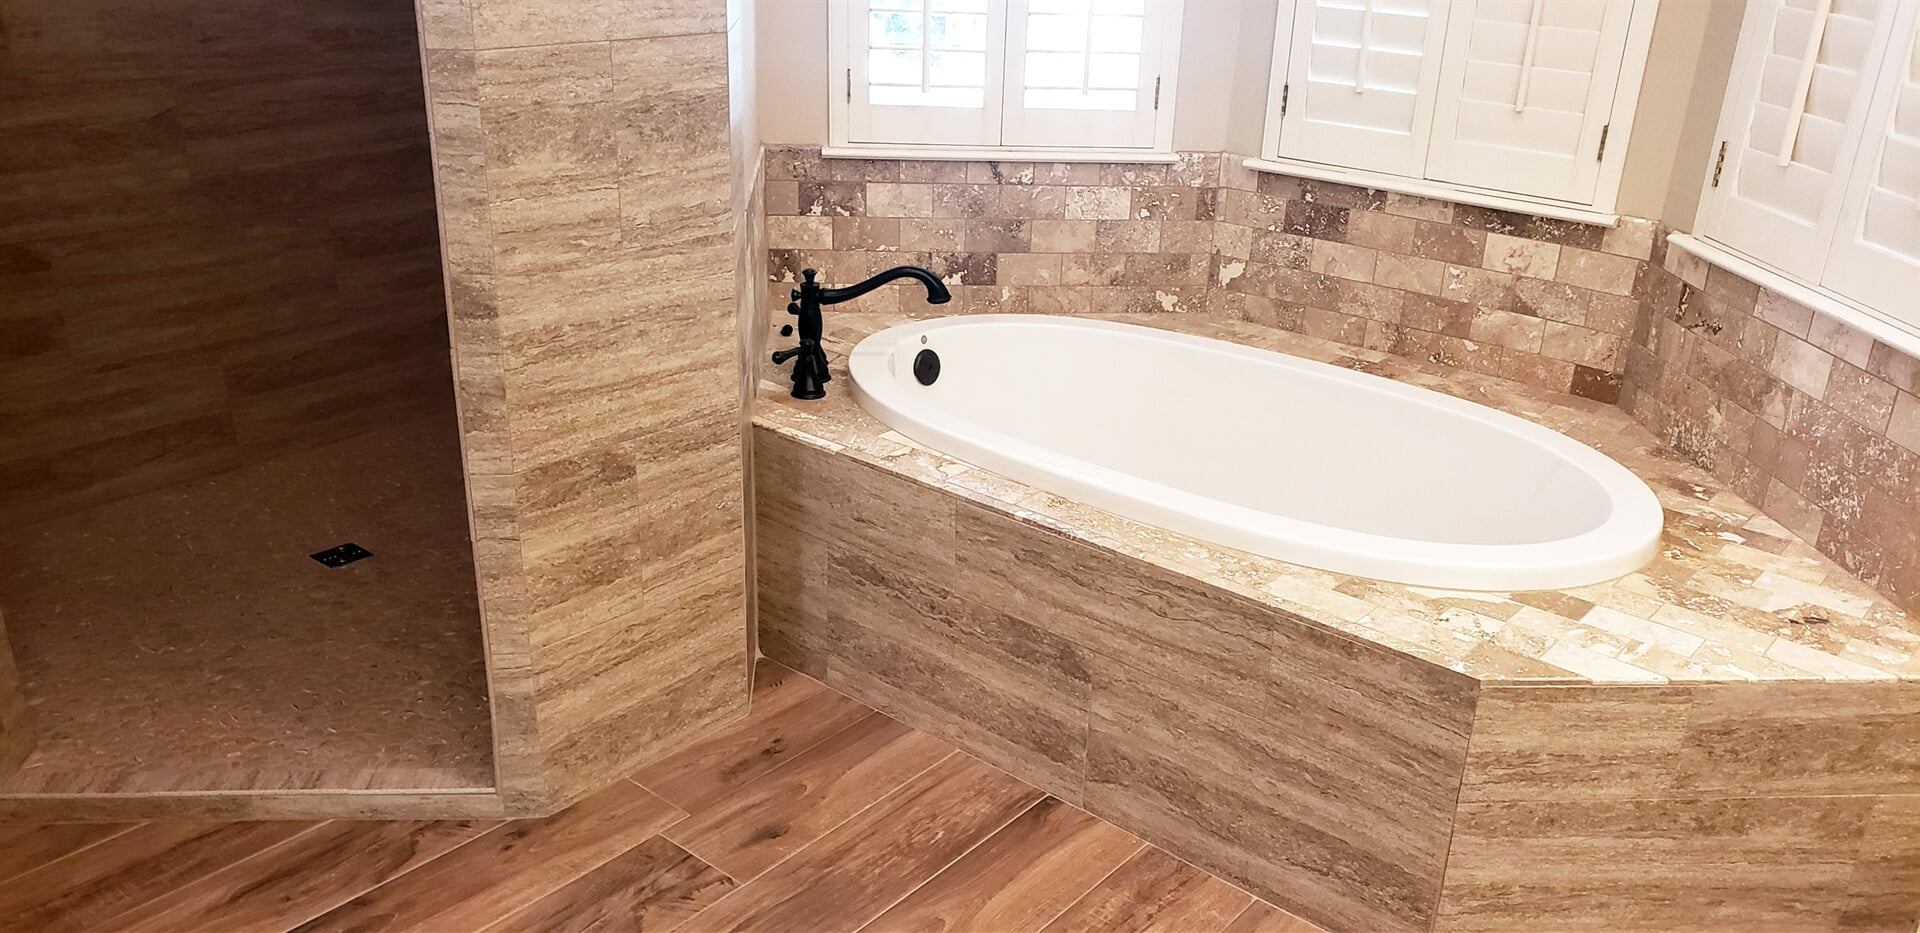 Tile tub surround in Beaumont, TX from Odile's Fine Flooring & Design